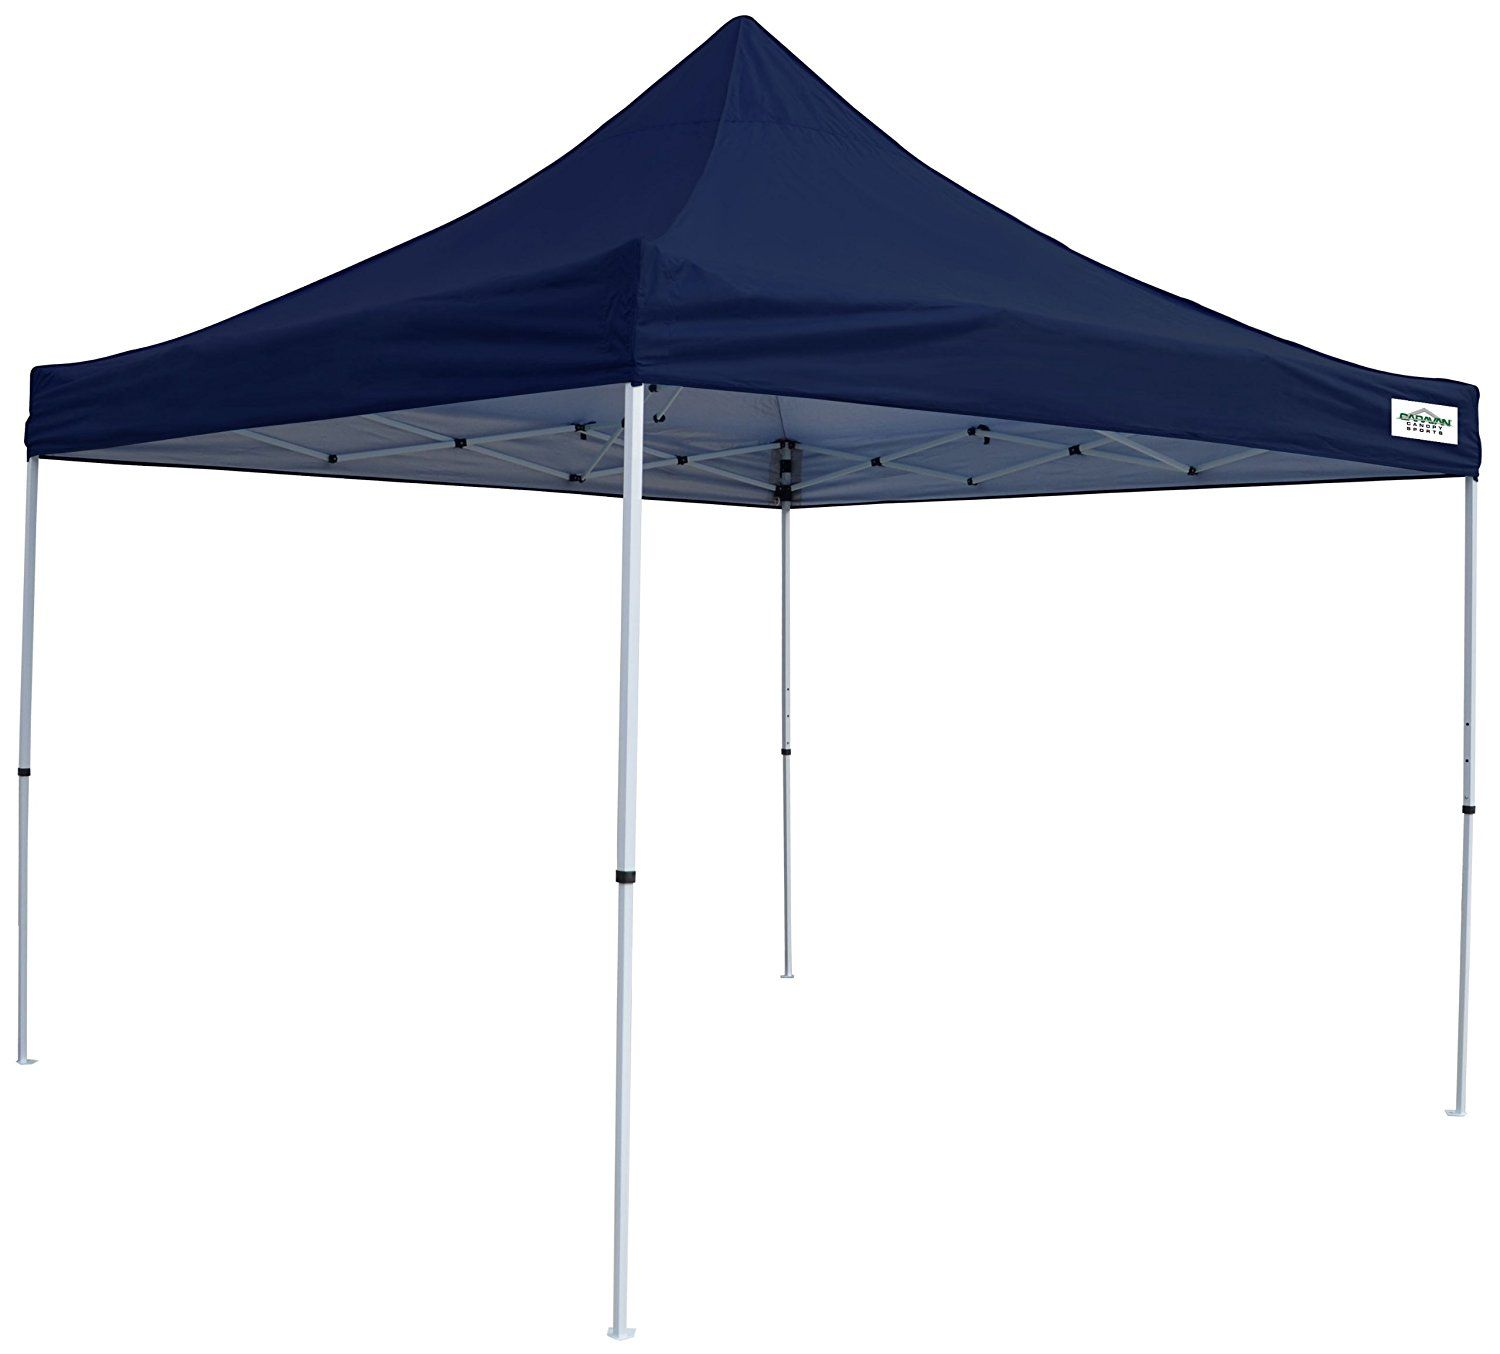 Caravan Global Sports 21008100060 10 X 10 Ft M Series 2 Pro Canopy Kit Navy Blue You Can Find More Details By Visiting The Canopy Canopy Outdoor Caravan